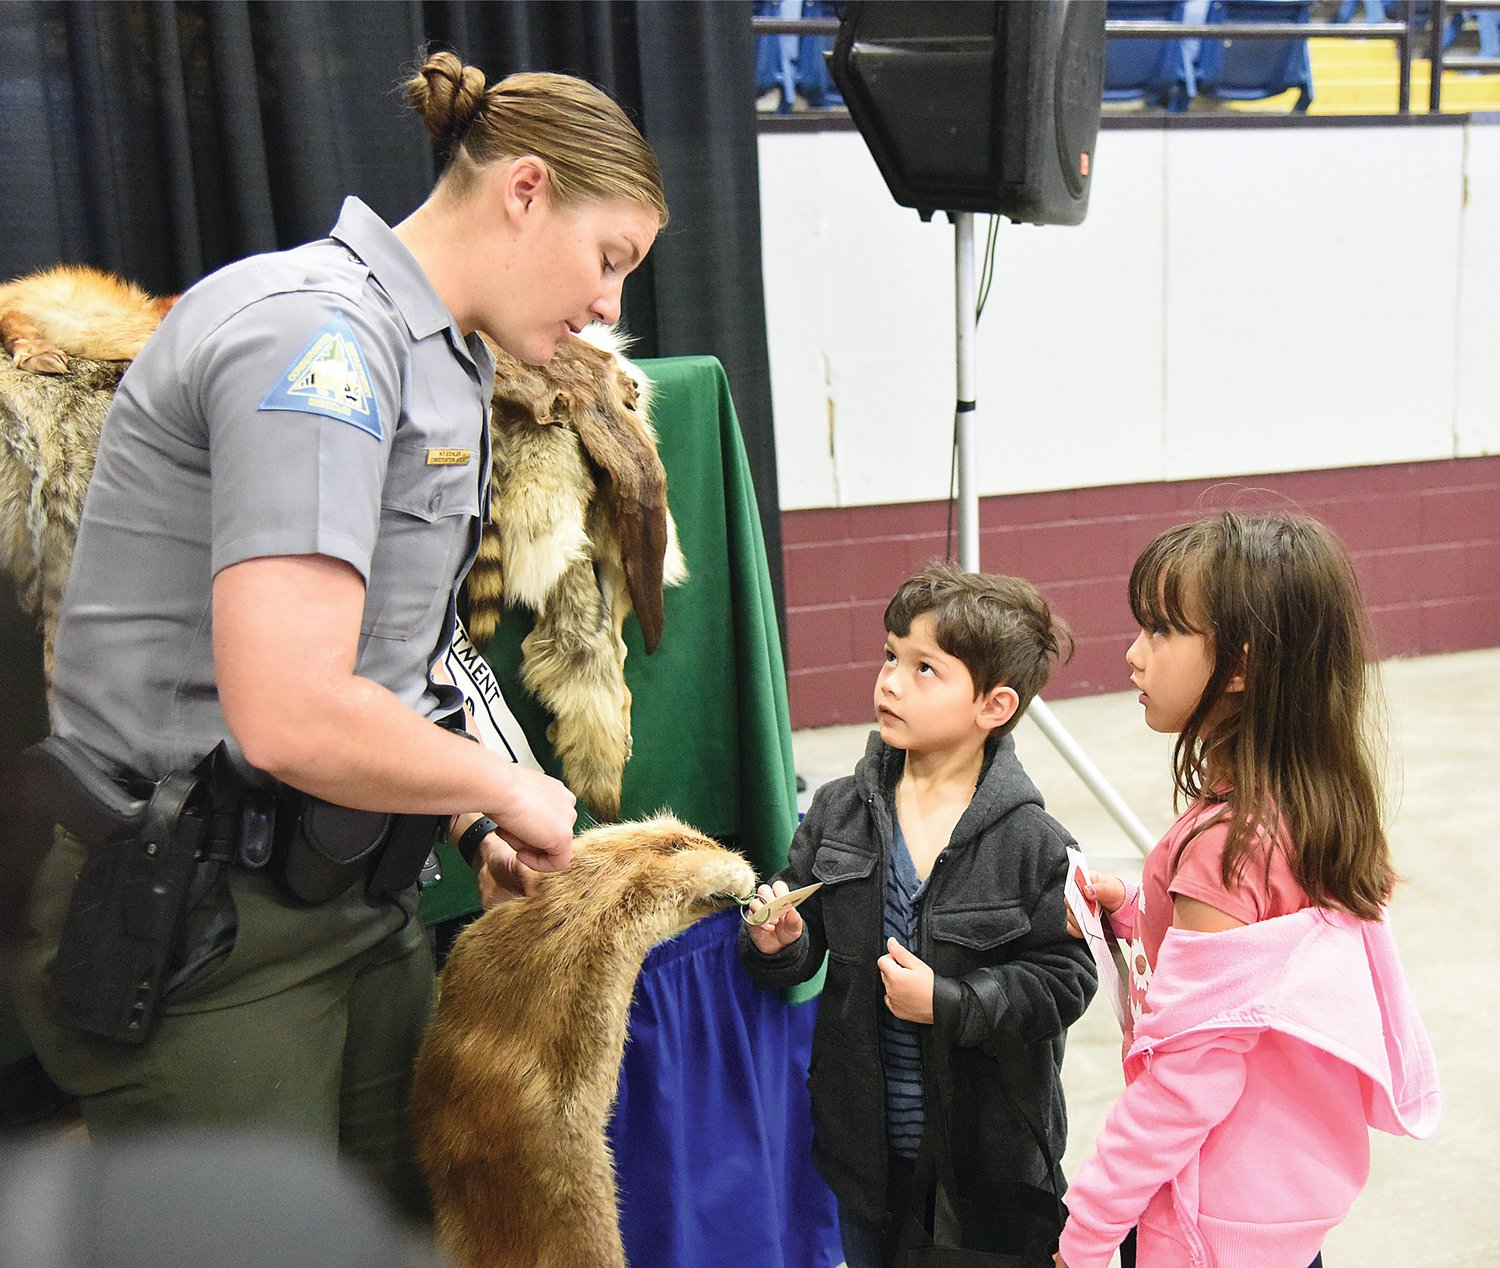 Missouri Department of Conservation Pettis County Agent Haeley Eichler holds an animal pelt for Matthew Goodman, 6, and Evelyn Goodman to touch Saturday at the Home and Garden Show. The children were attending the event with their mother, Reni Dietrick, and their step-father, Brian Patton.